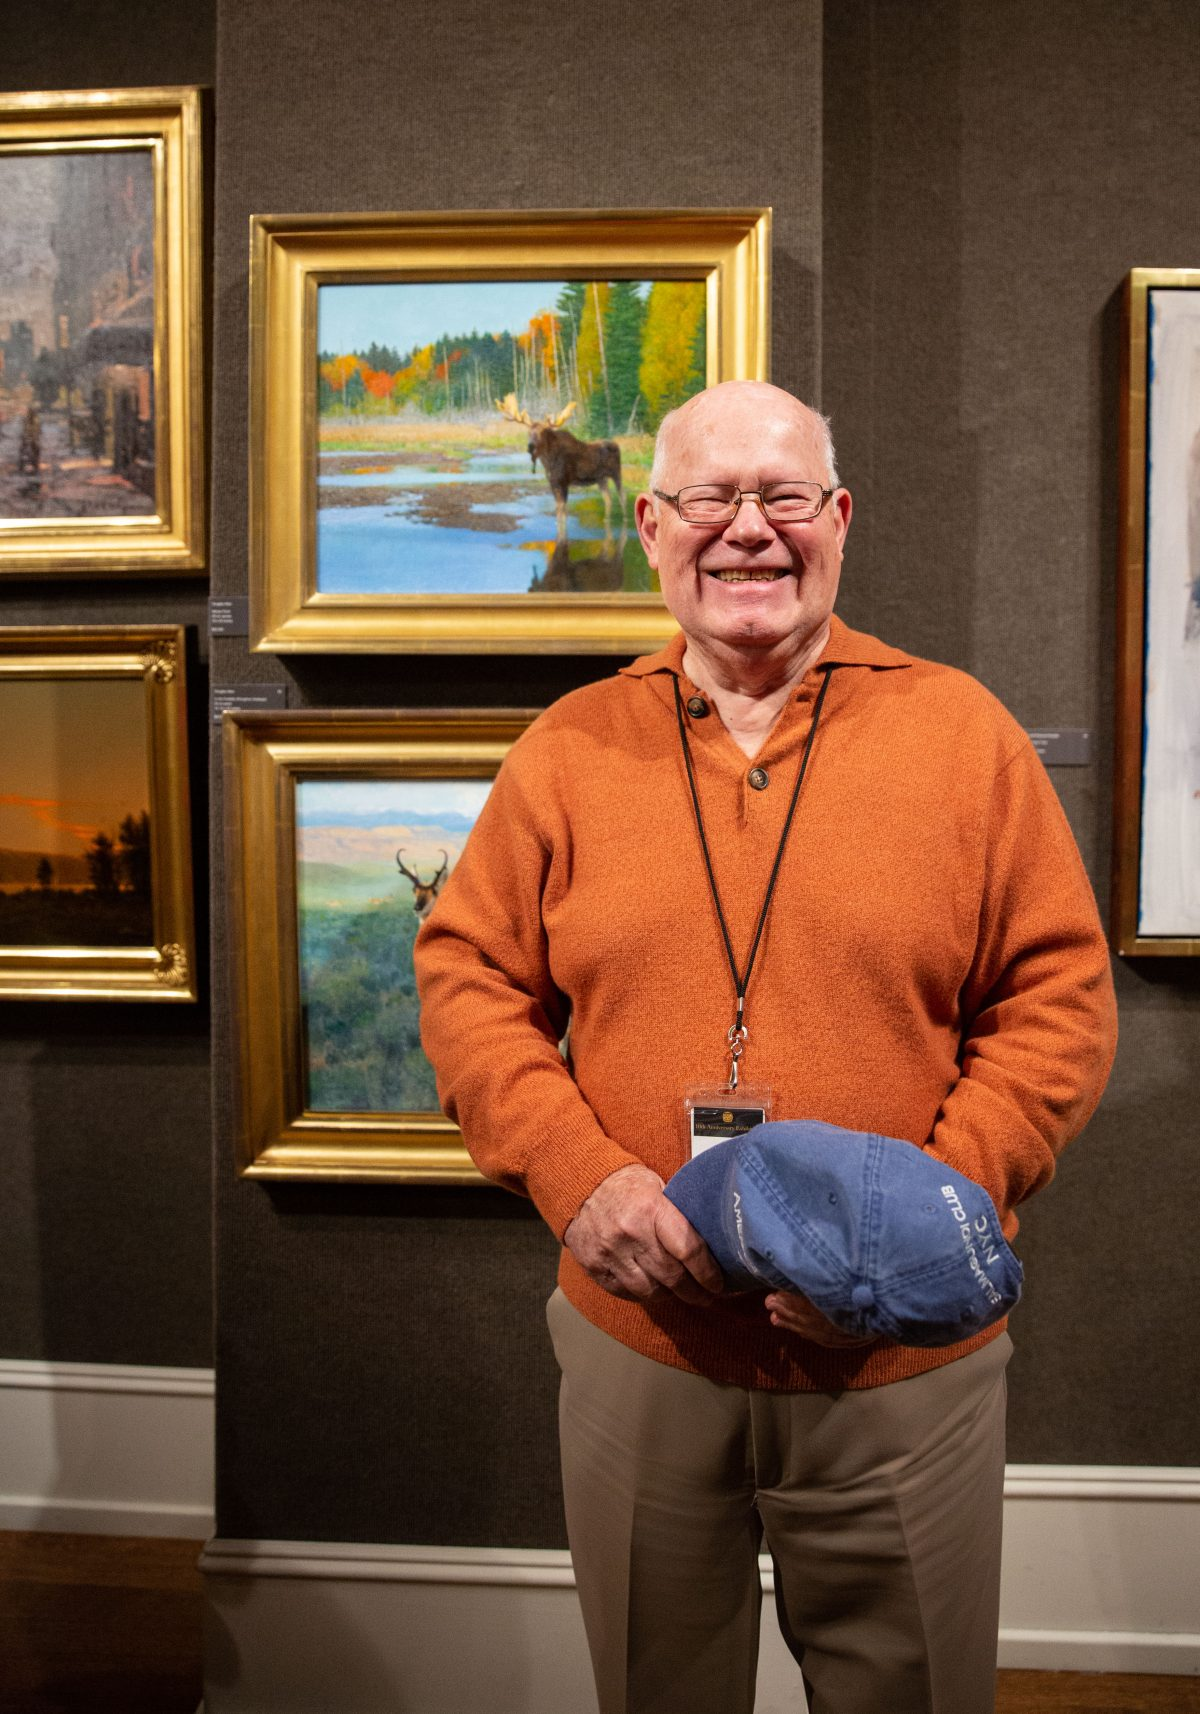 Living Legend artist, Douglas Allen poses for a photo by his paintings during the 10th American Masters at the Salmagundi Club on October 13, 2018. (Milene Fernandez/The Epoch Times)